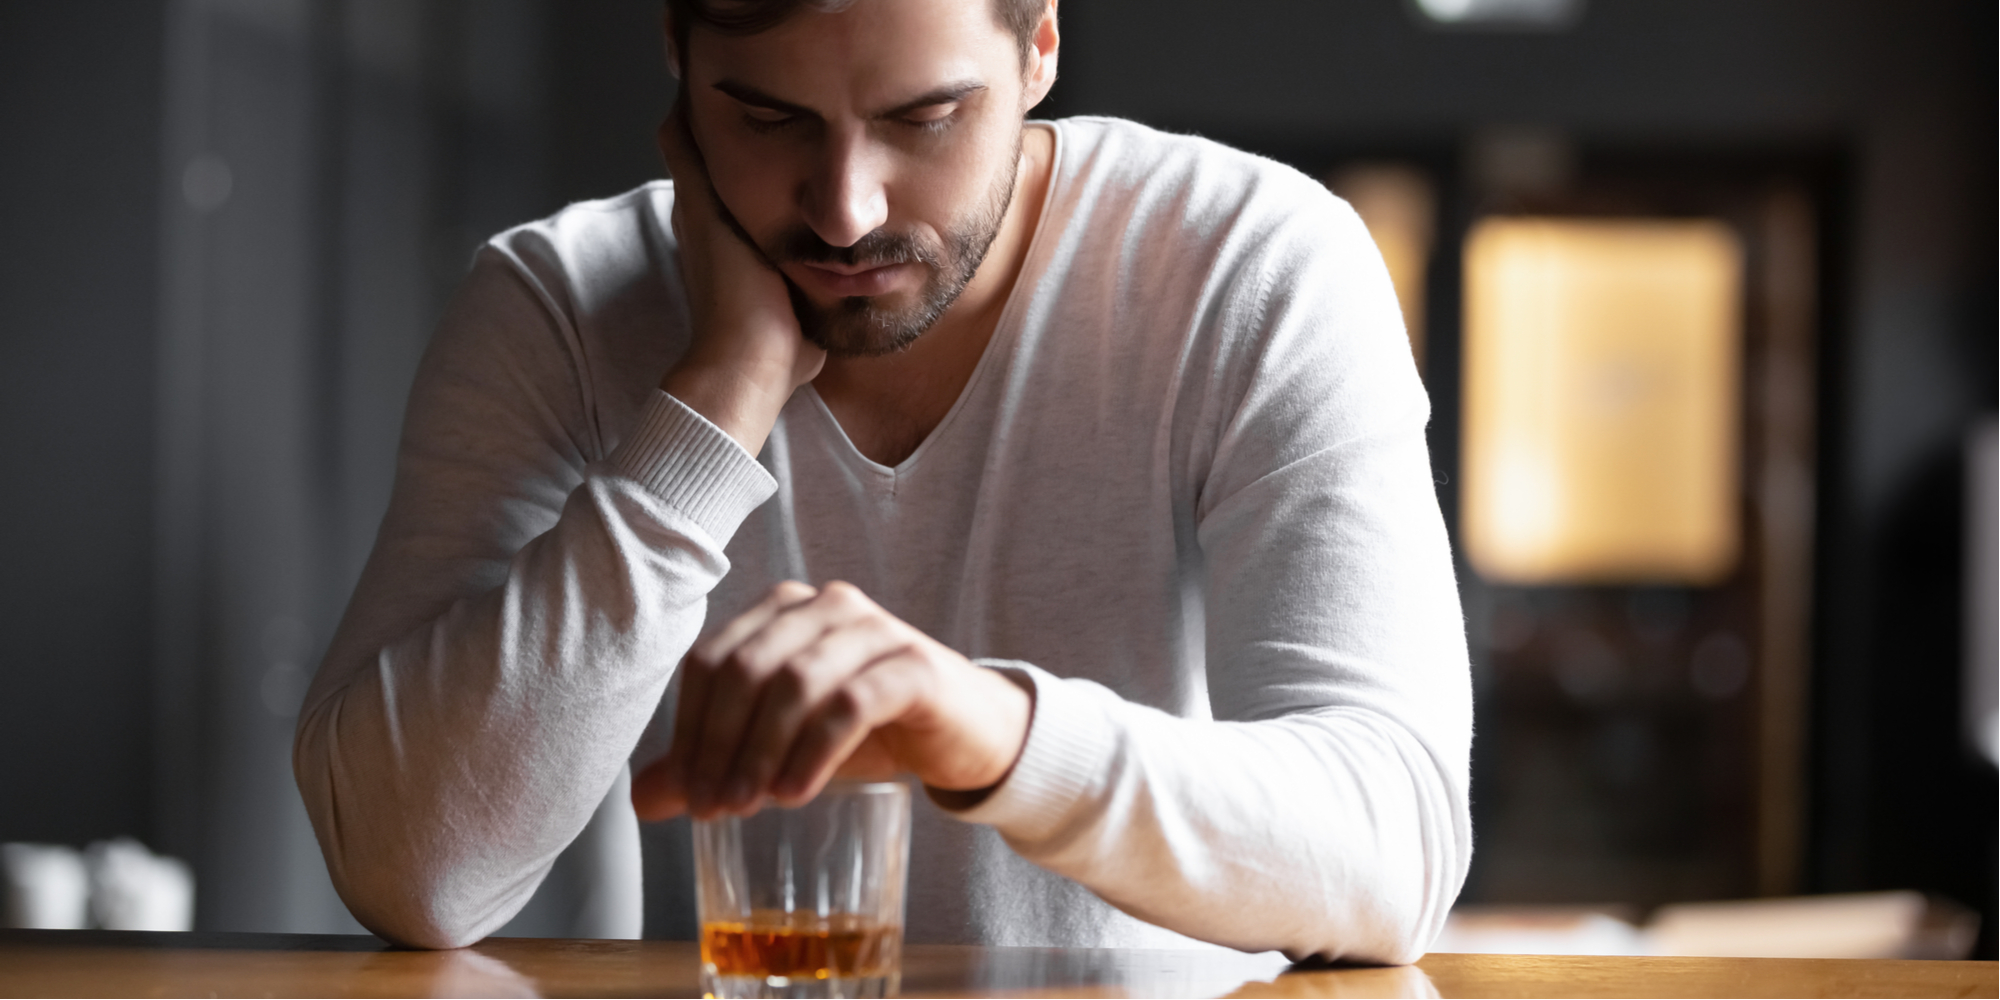 alternatives to drinking and using